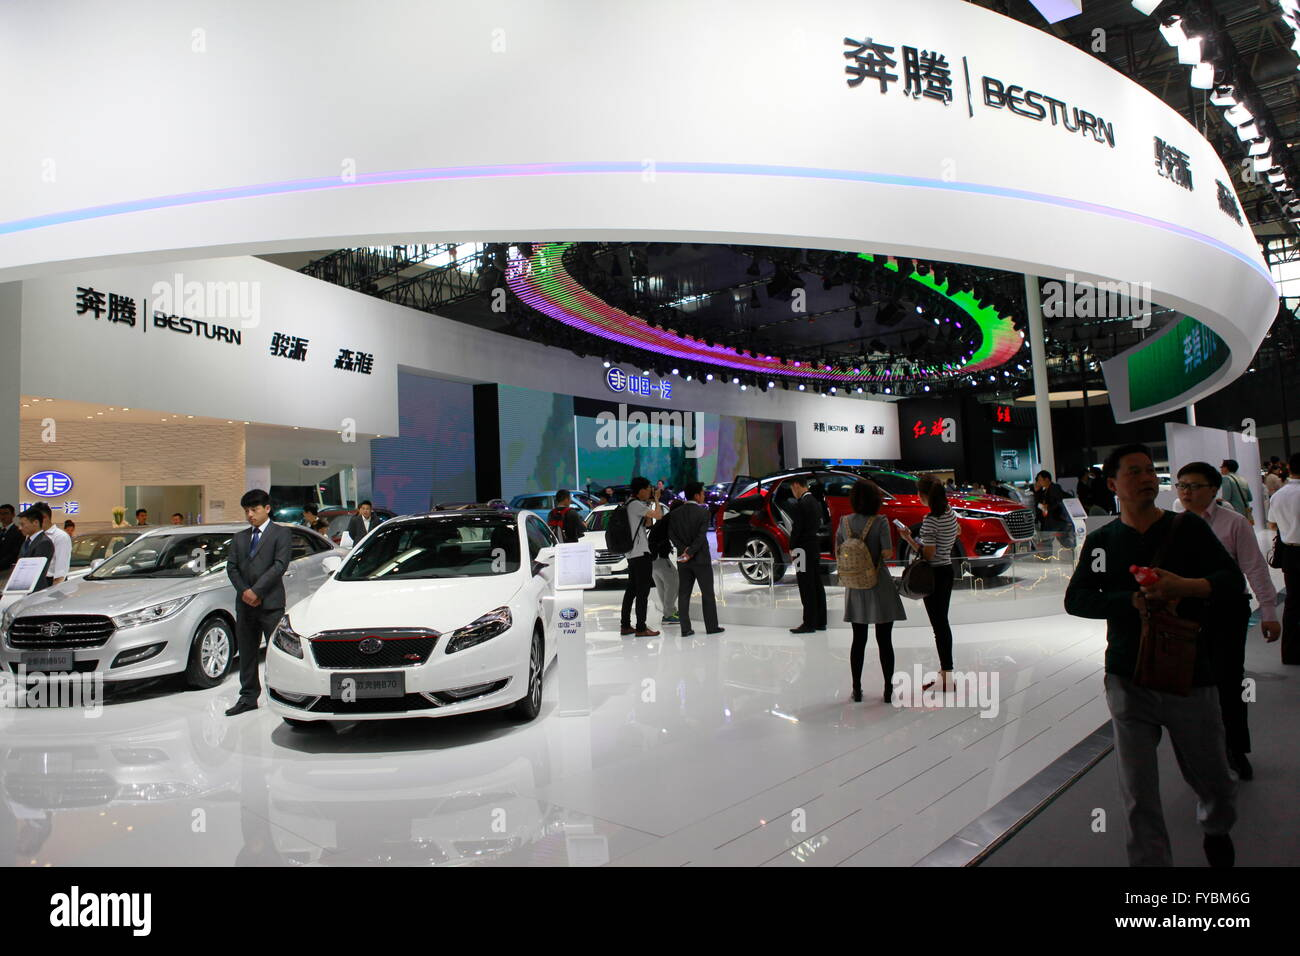 Beijing, China. Monday, 25 April 2016. 2016 Beijing International Automotive Exhibition. Credit:  Shui Ta Shan/Alamy - Stock Image